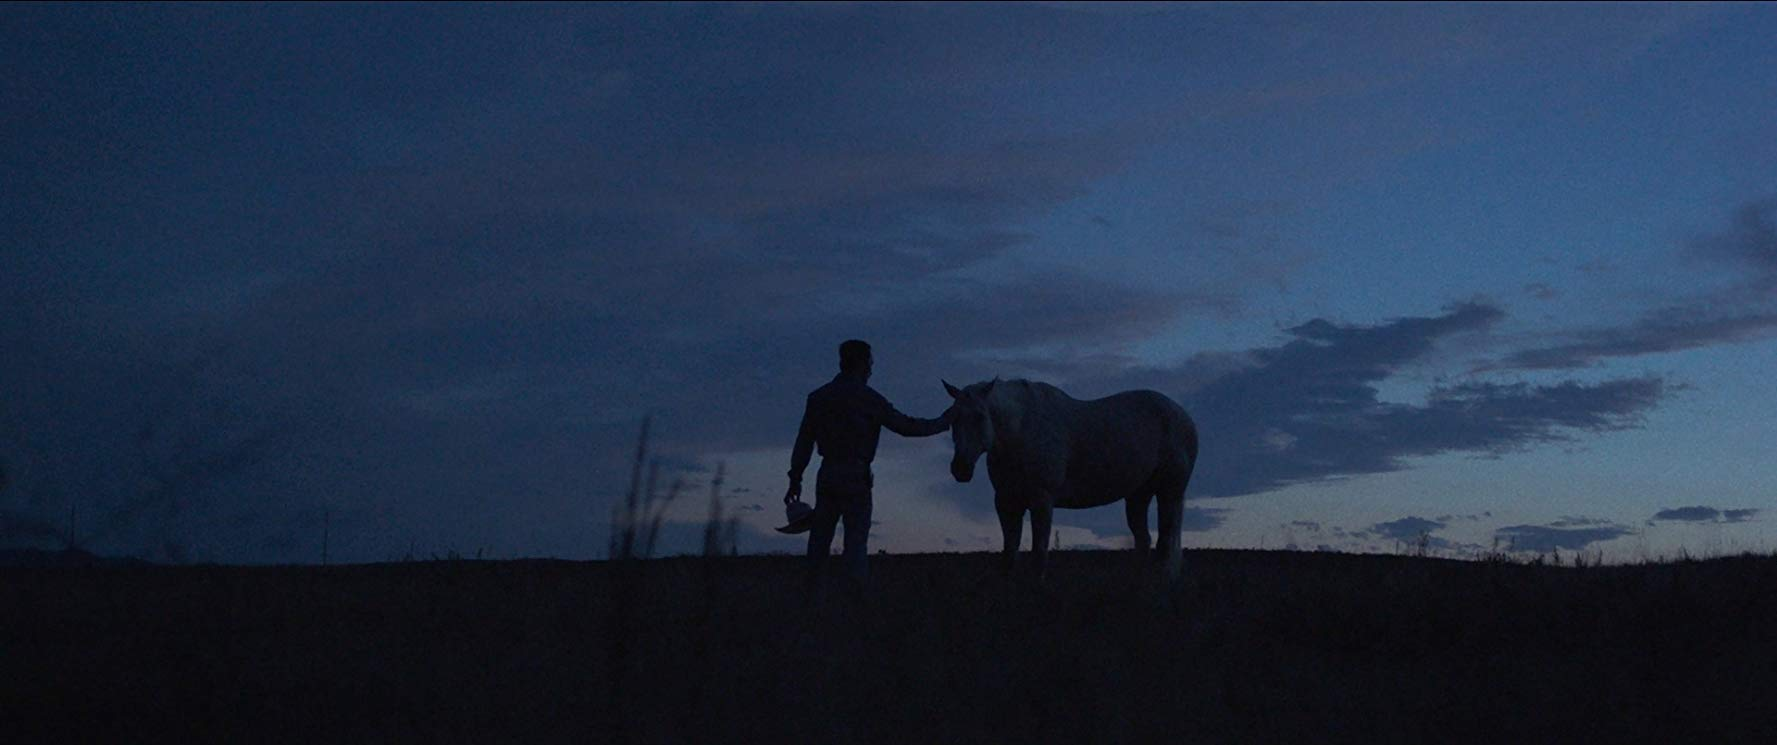 The silhouettes of a person and a horse against a dusky sky.